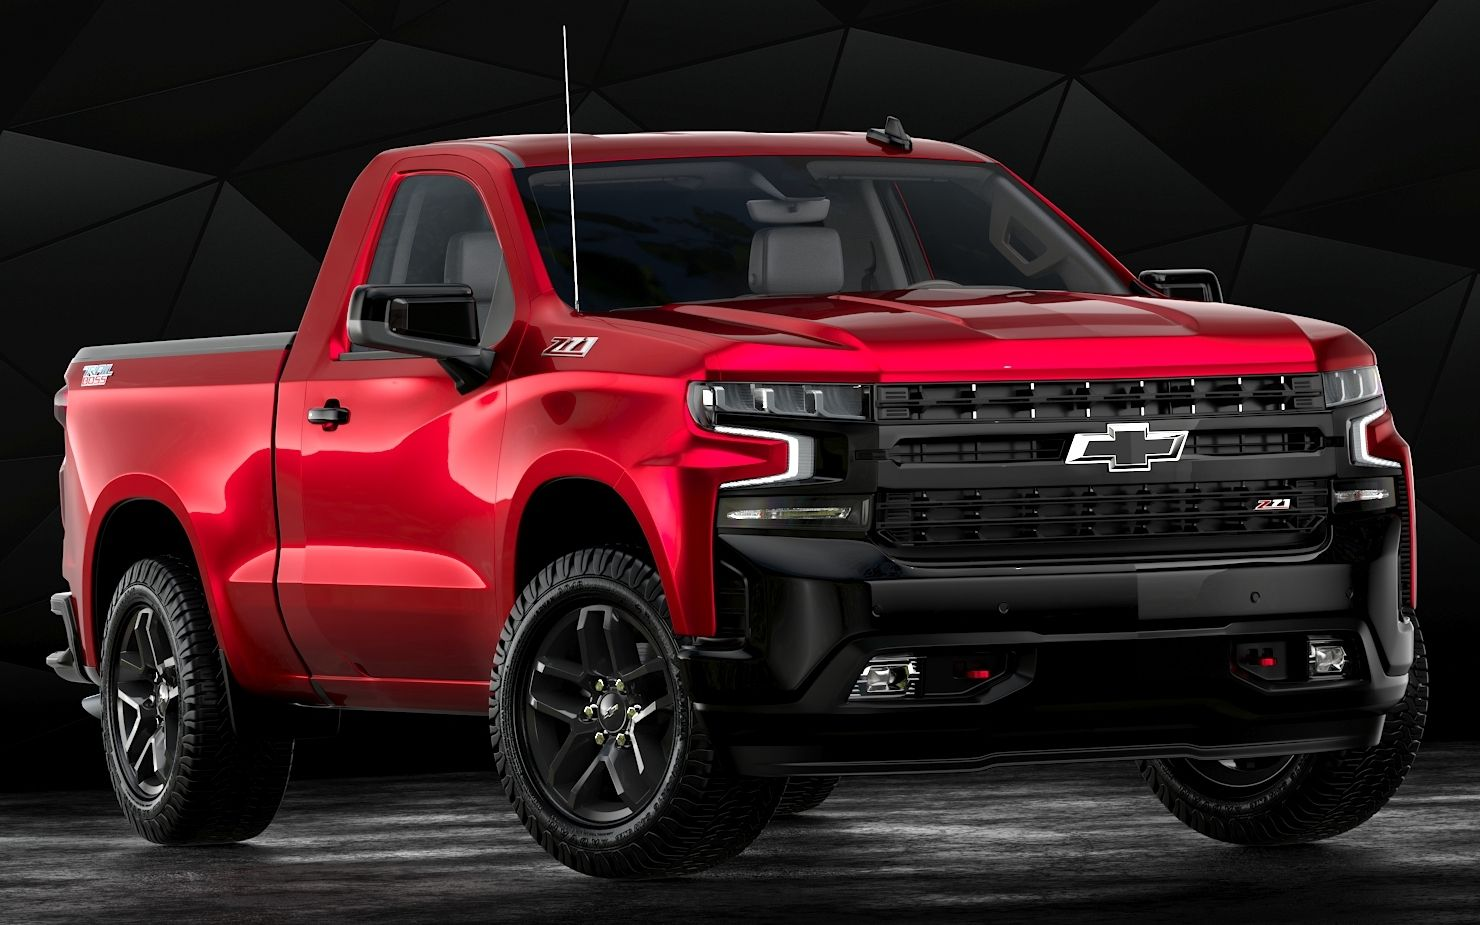 2019 Chevrolet Silverado Regular Cab Short Bed Lt Trail Boss